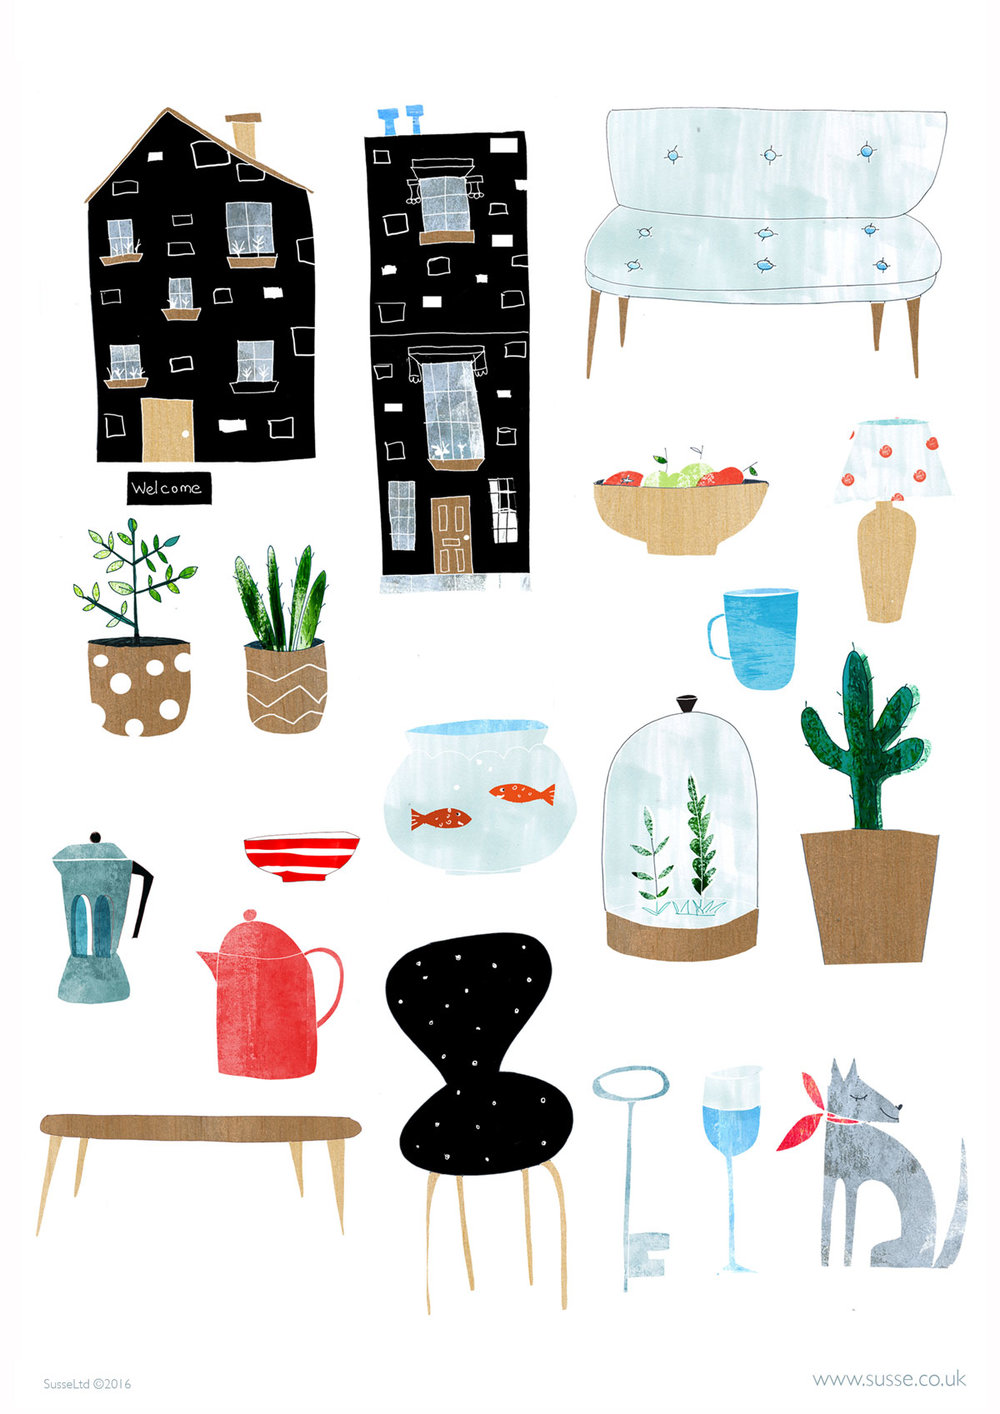 Spot Illustrations for the Home